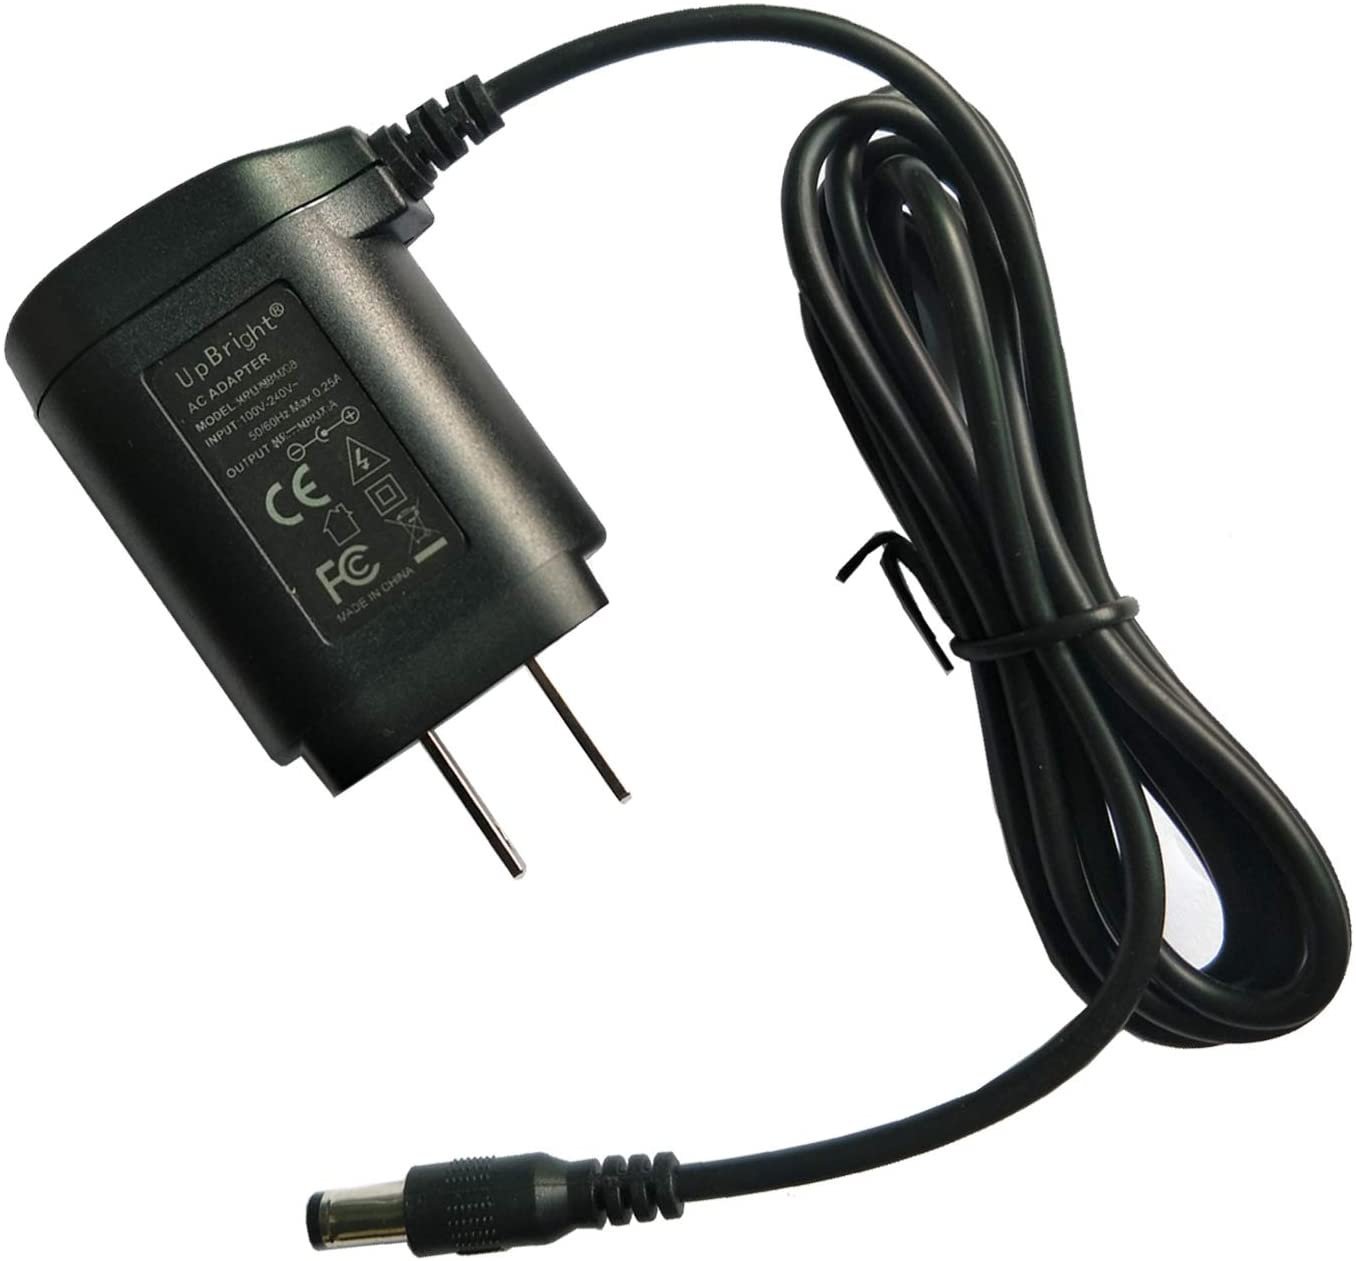 UpBright 5V AC Adapter Compatible with Black & Decker PD360 PD400LG CSD300T CSD300TP 3.6V DC Pivot Driver Drill UA-0402 5102970-19 90500898 90500896 UA050020 5102400-03 90530404 UA042010E Batt Charger